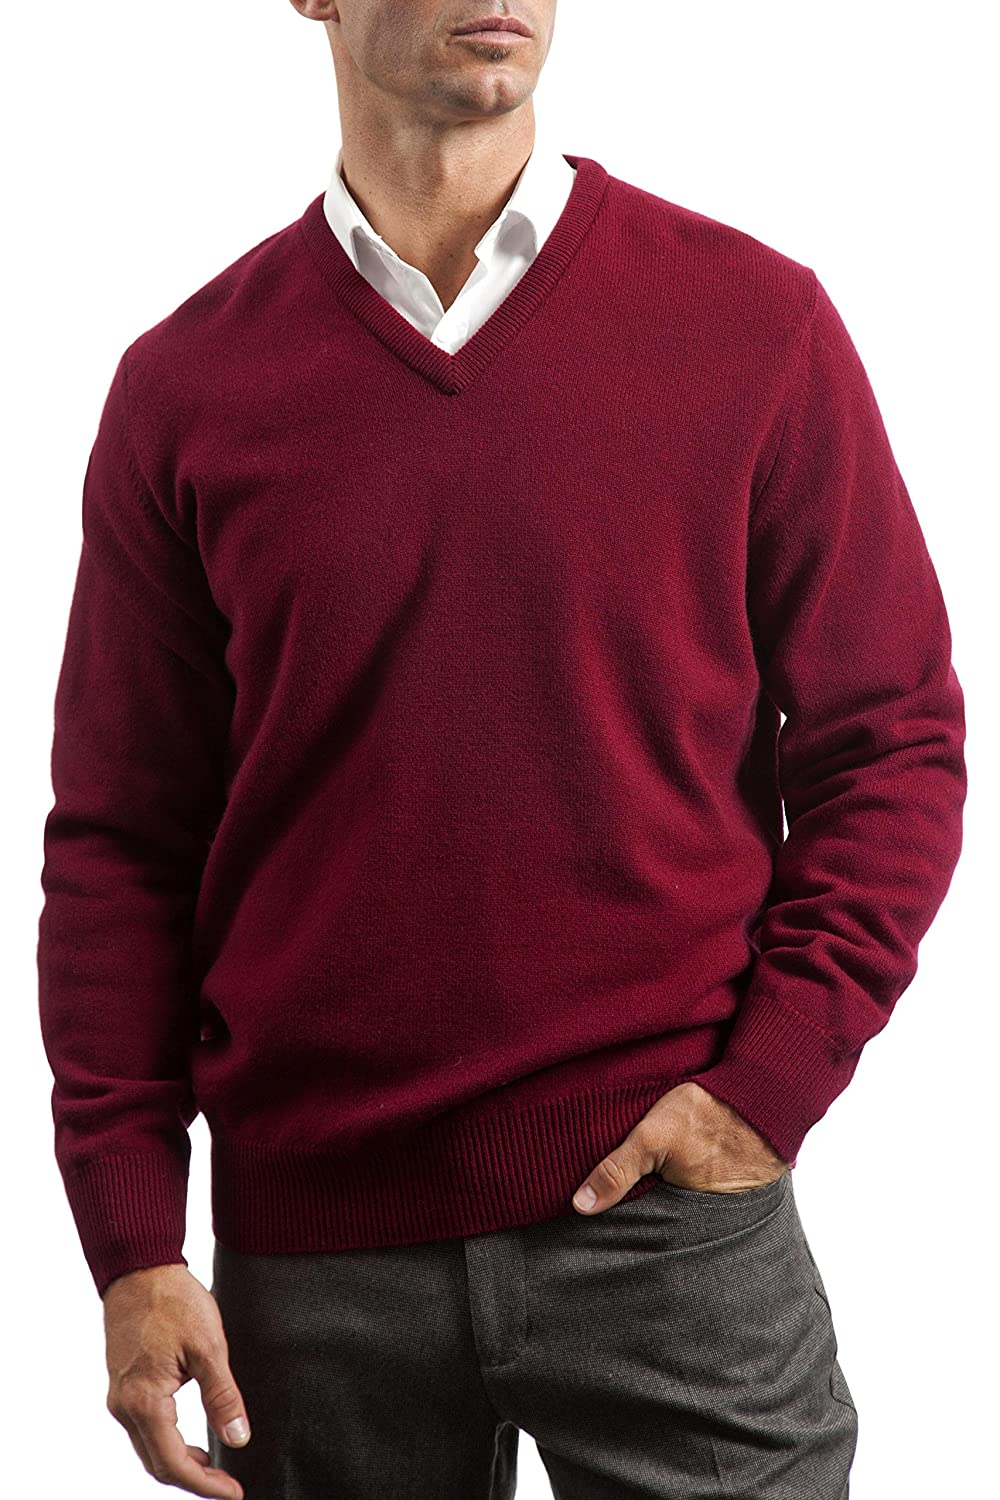 a5914a1a5 Great and British Knitwear Men s Lambswool Plain V Neck Sweater Made ...